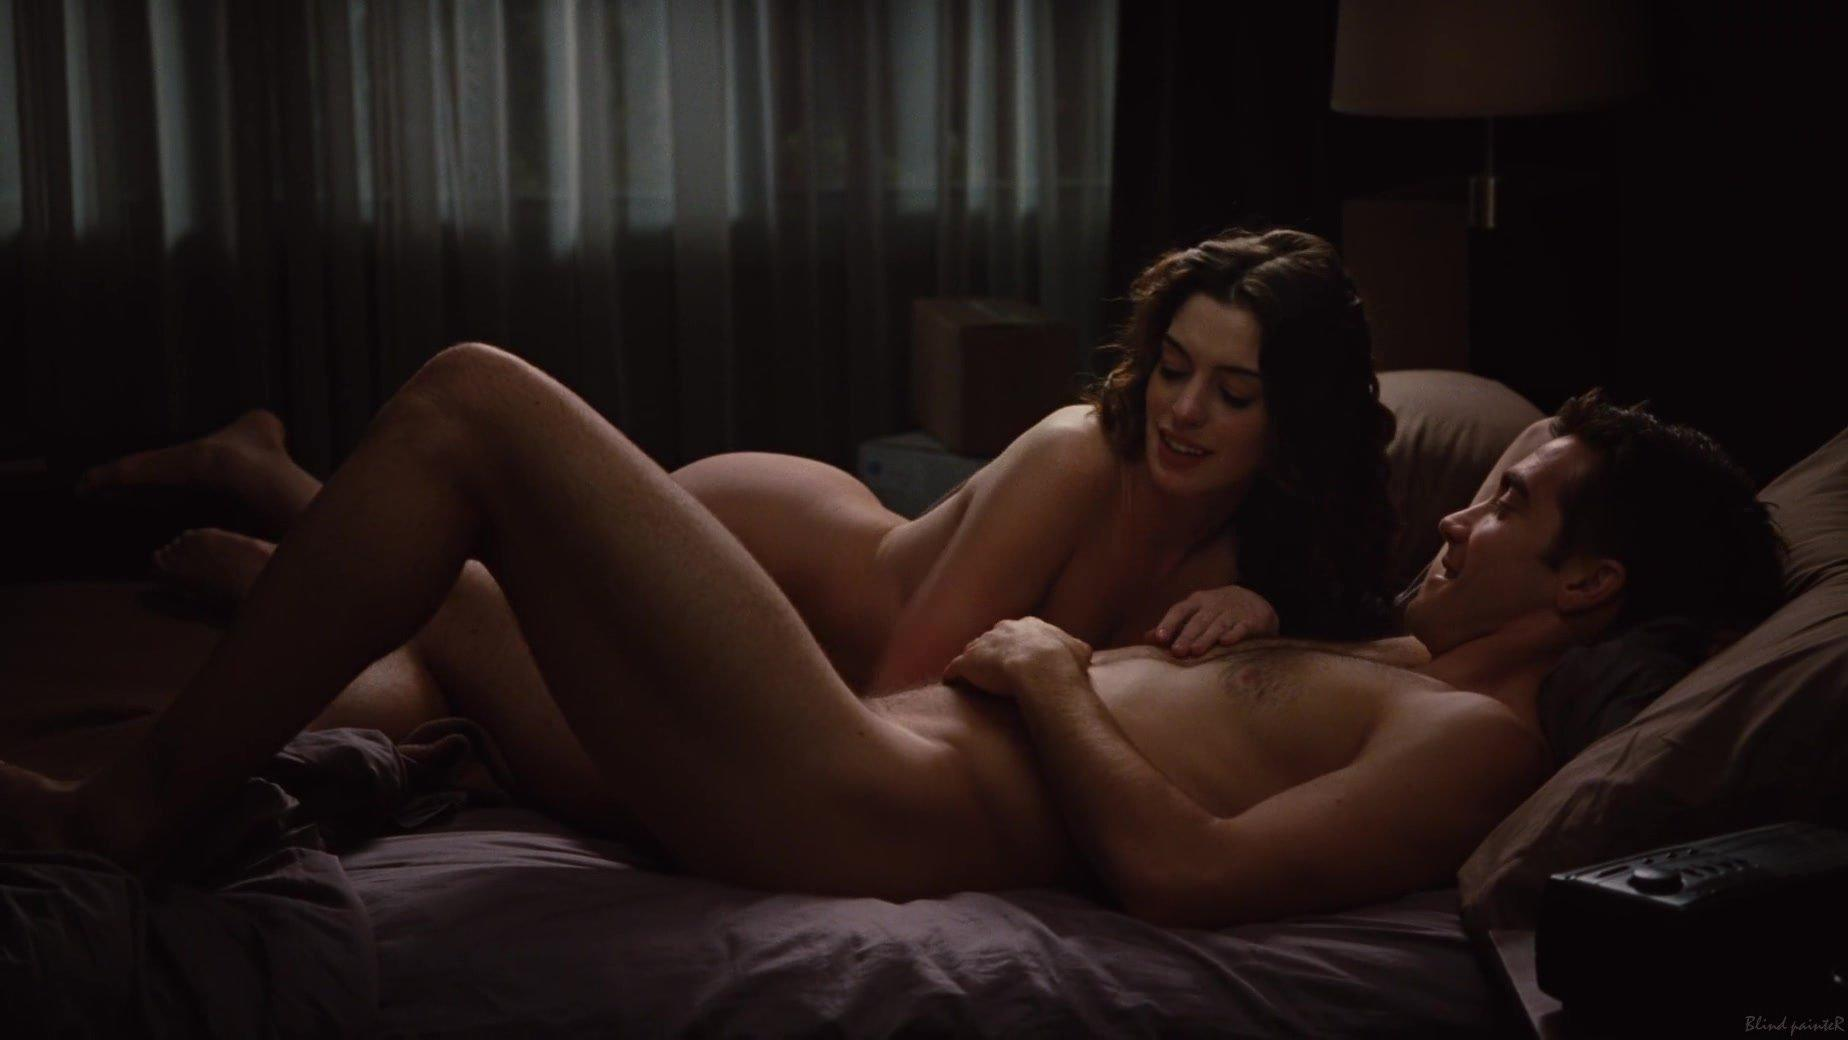 Sex Anne Hathaway naked (82 photo), Topless, Bikini, Boobs, in bikini 2017